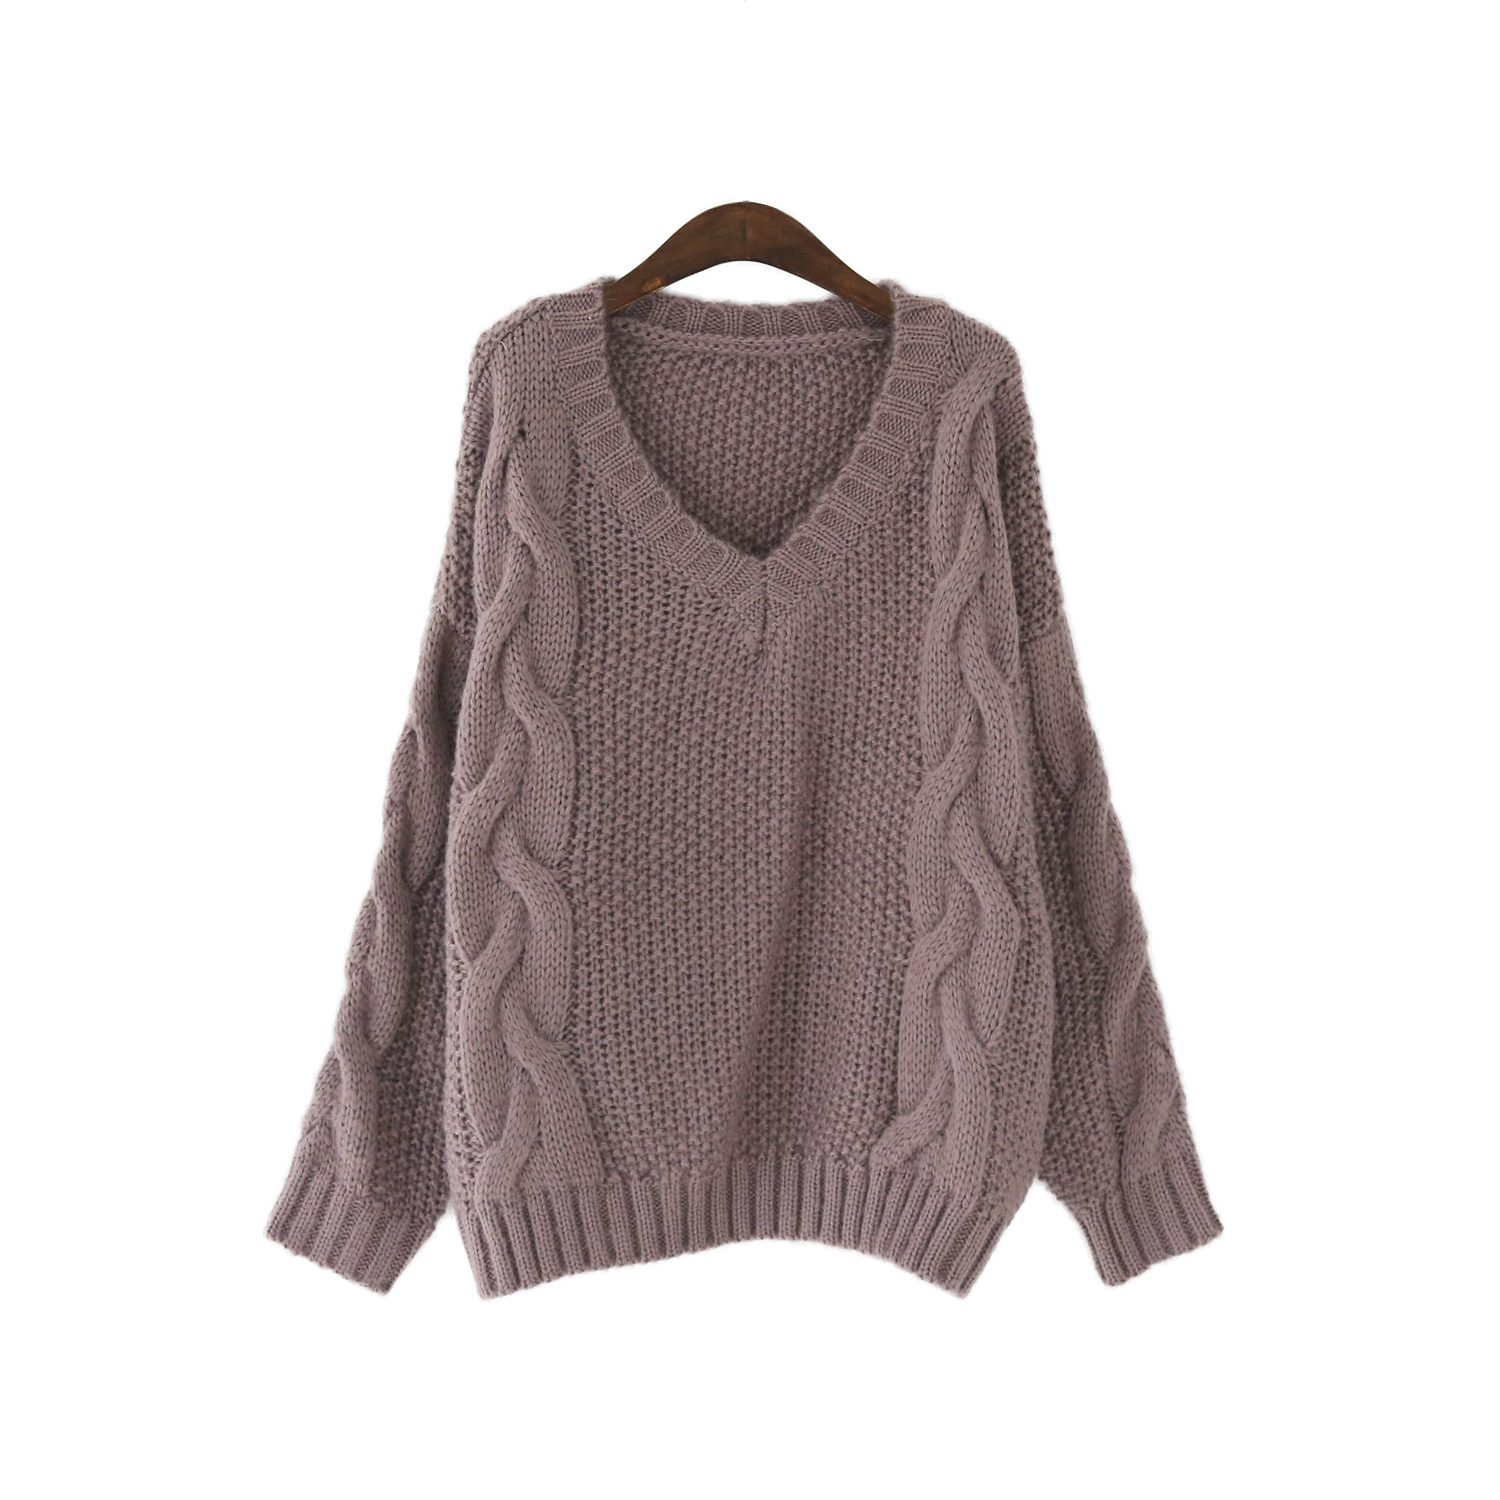 4218f750f Cable Knit Sweater Women Wide V Neck Jumper Pullover Sweaters -in ...